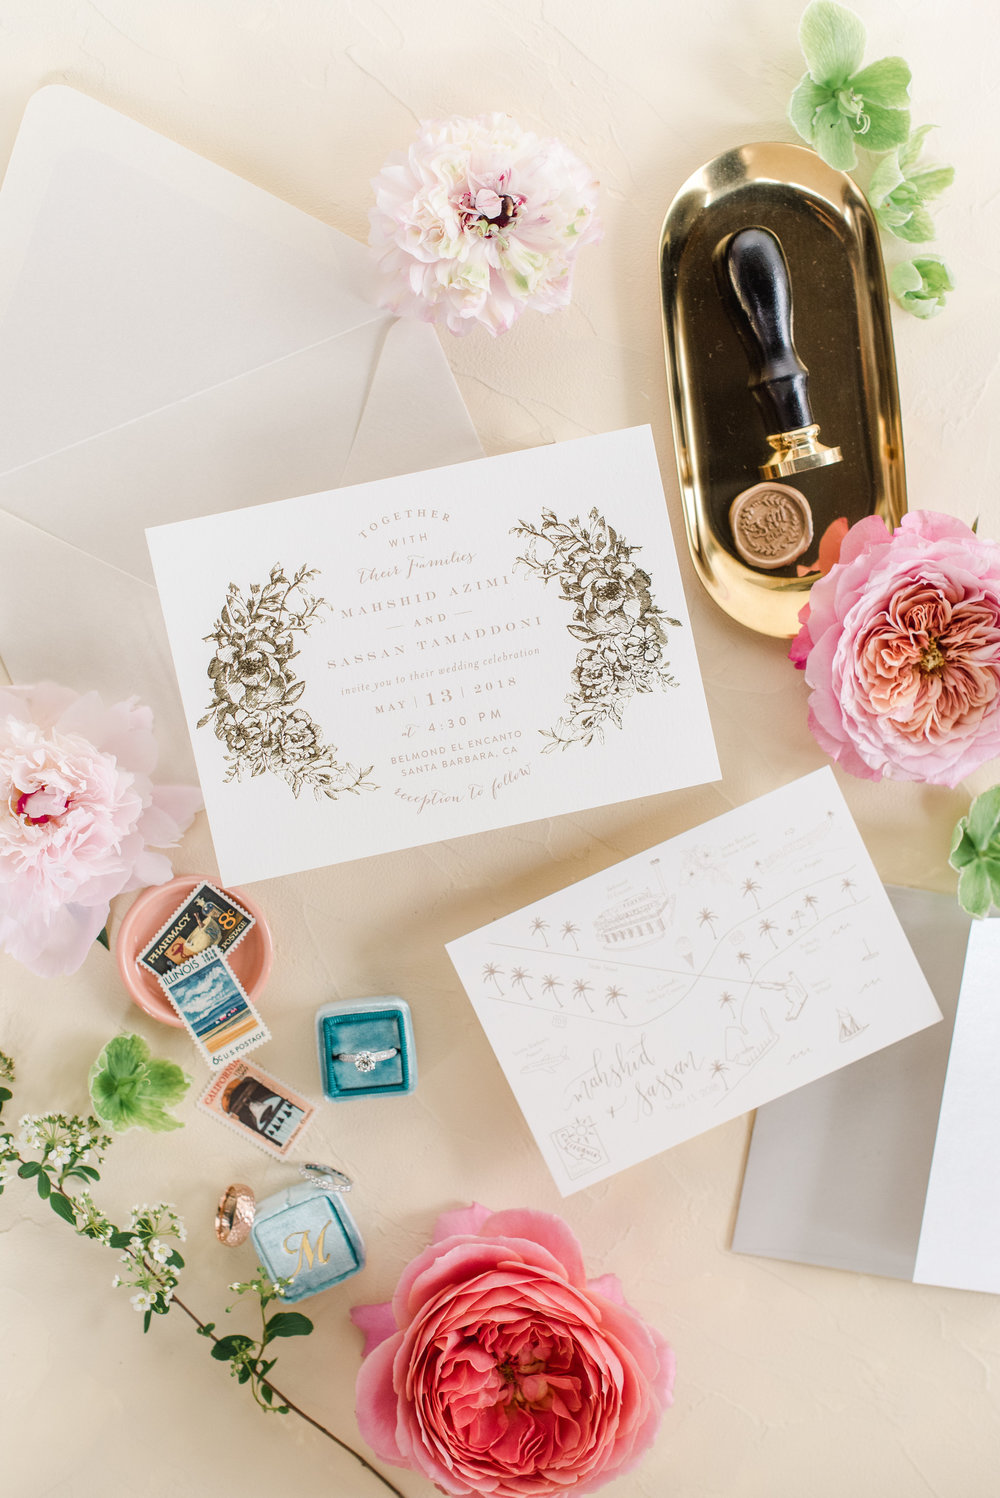 mahshid and sassan wedding with cluster events paper goods.jpg